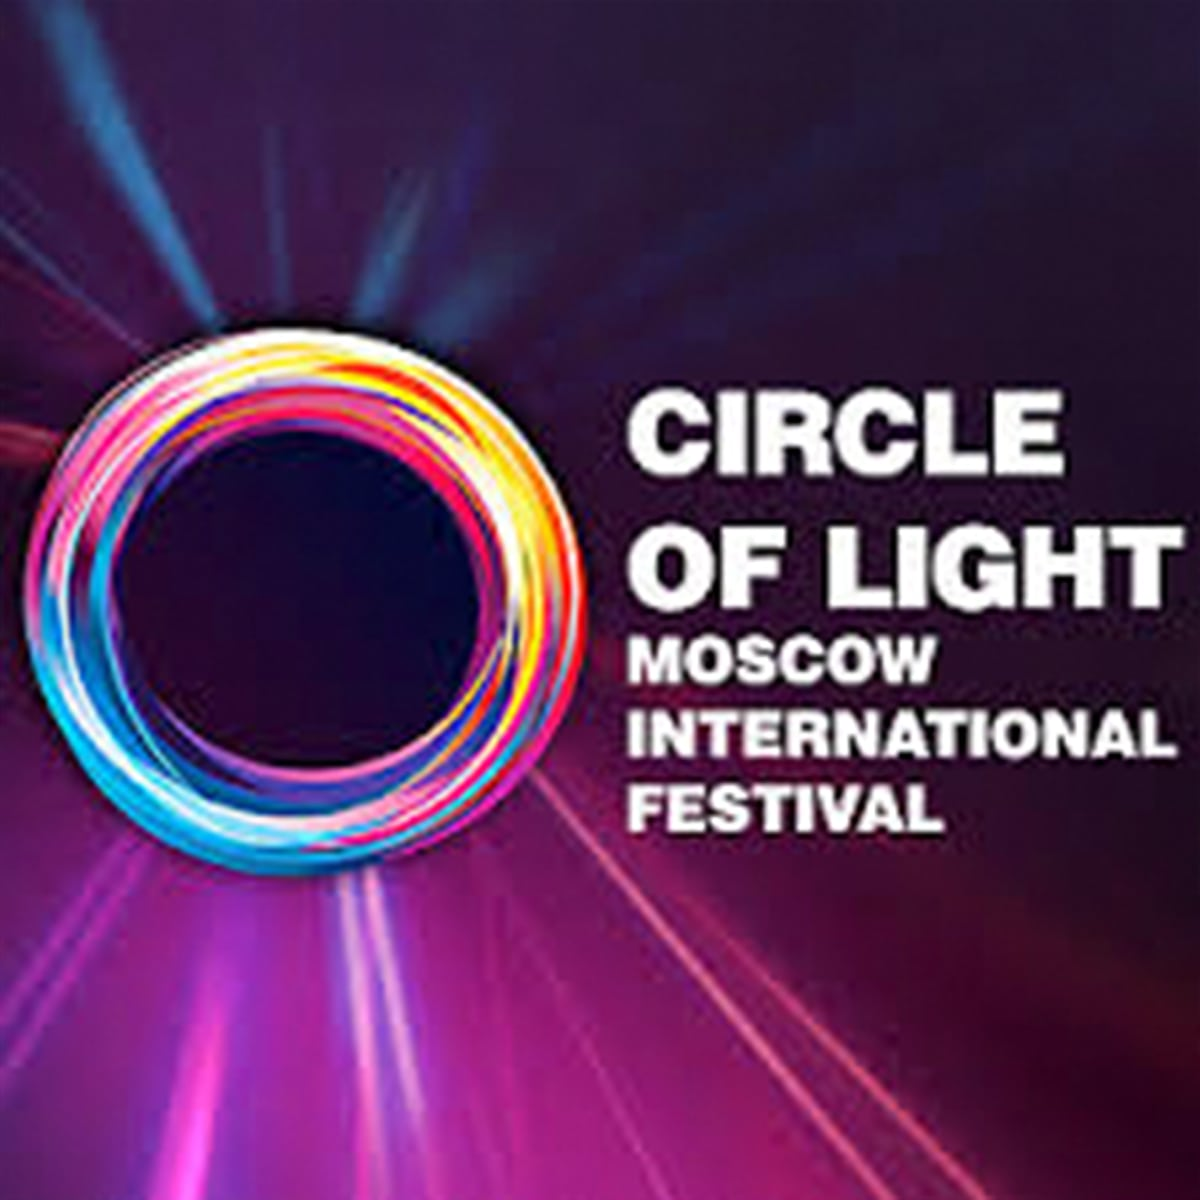 Circle Of Light - Light Festival of Moscow